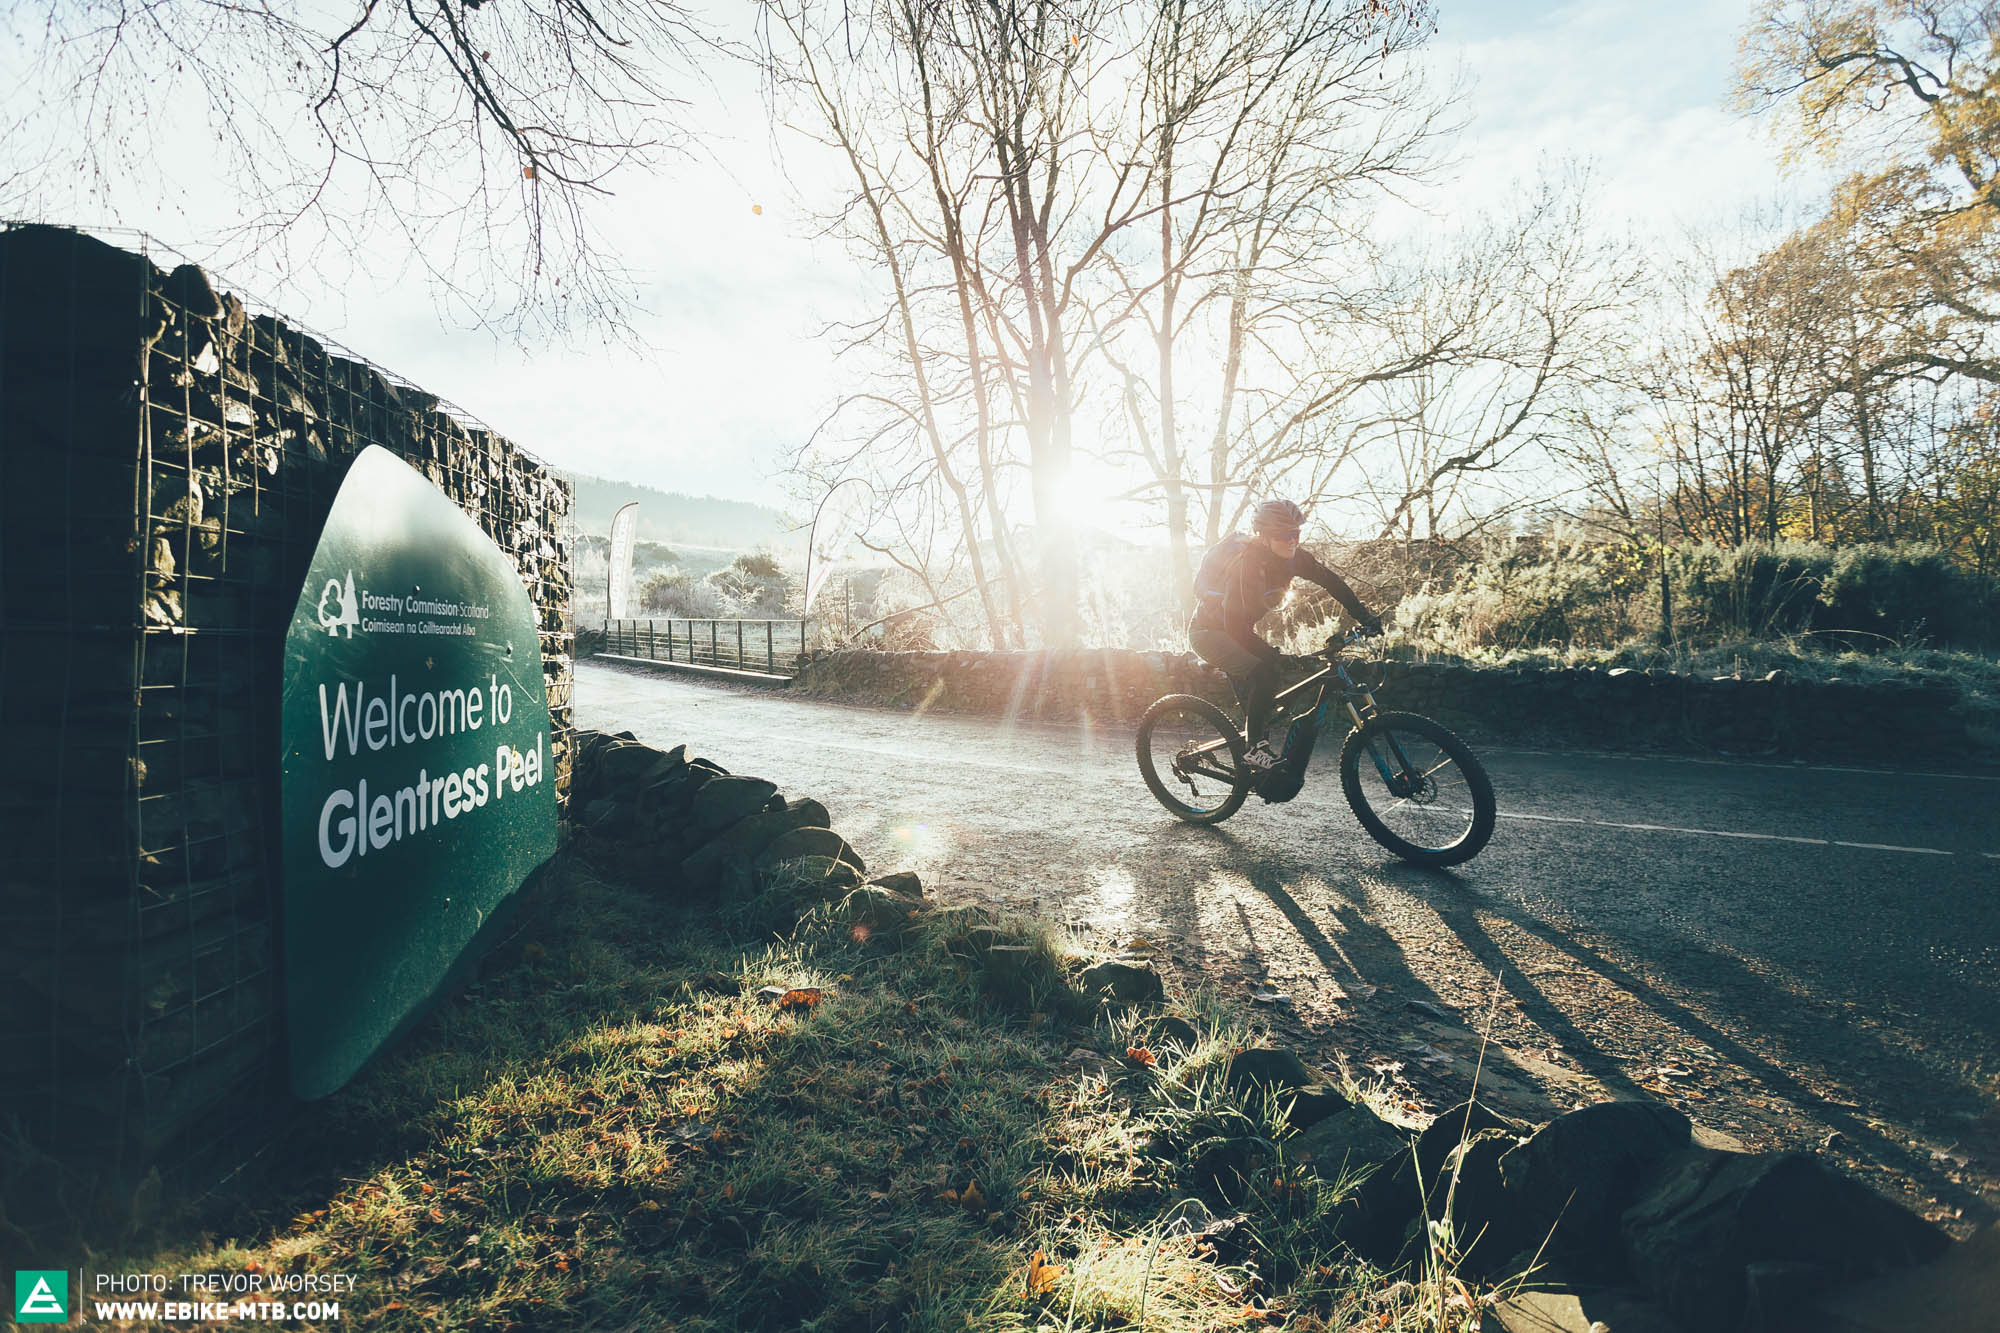 Can an E-MTB Ride Every Trail at Glentress in a Single